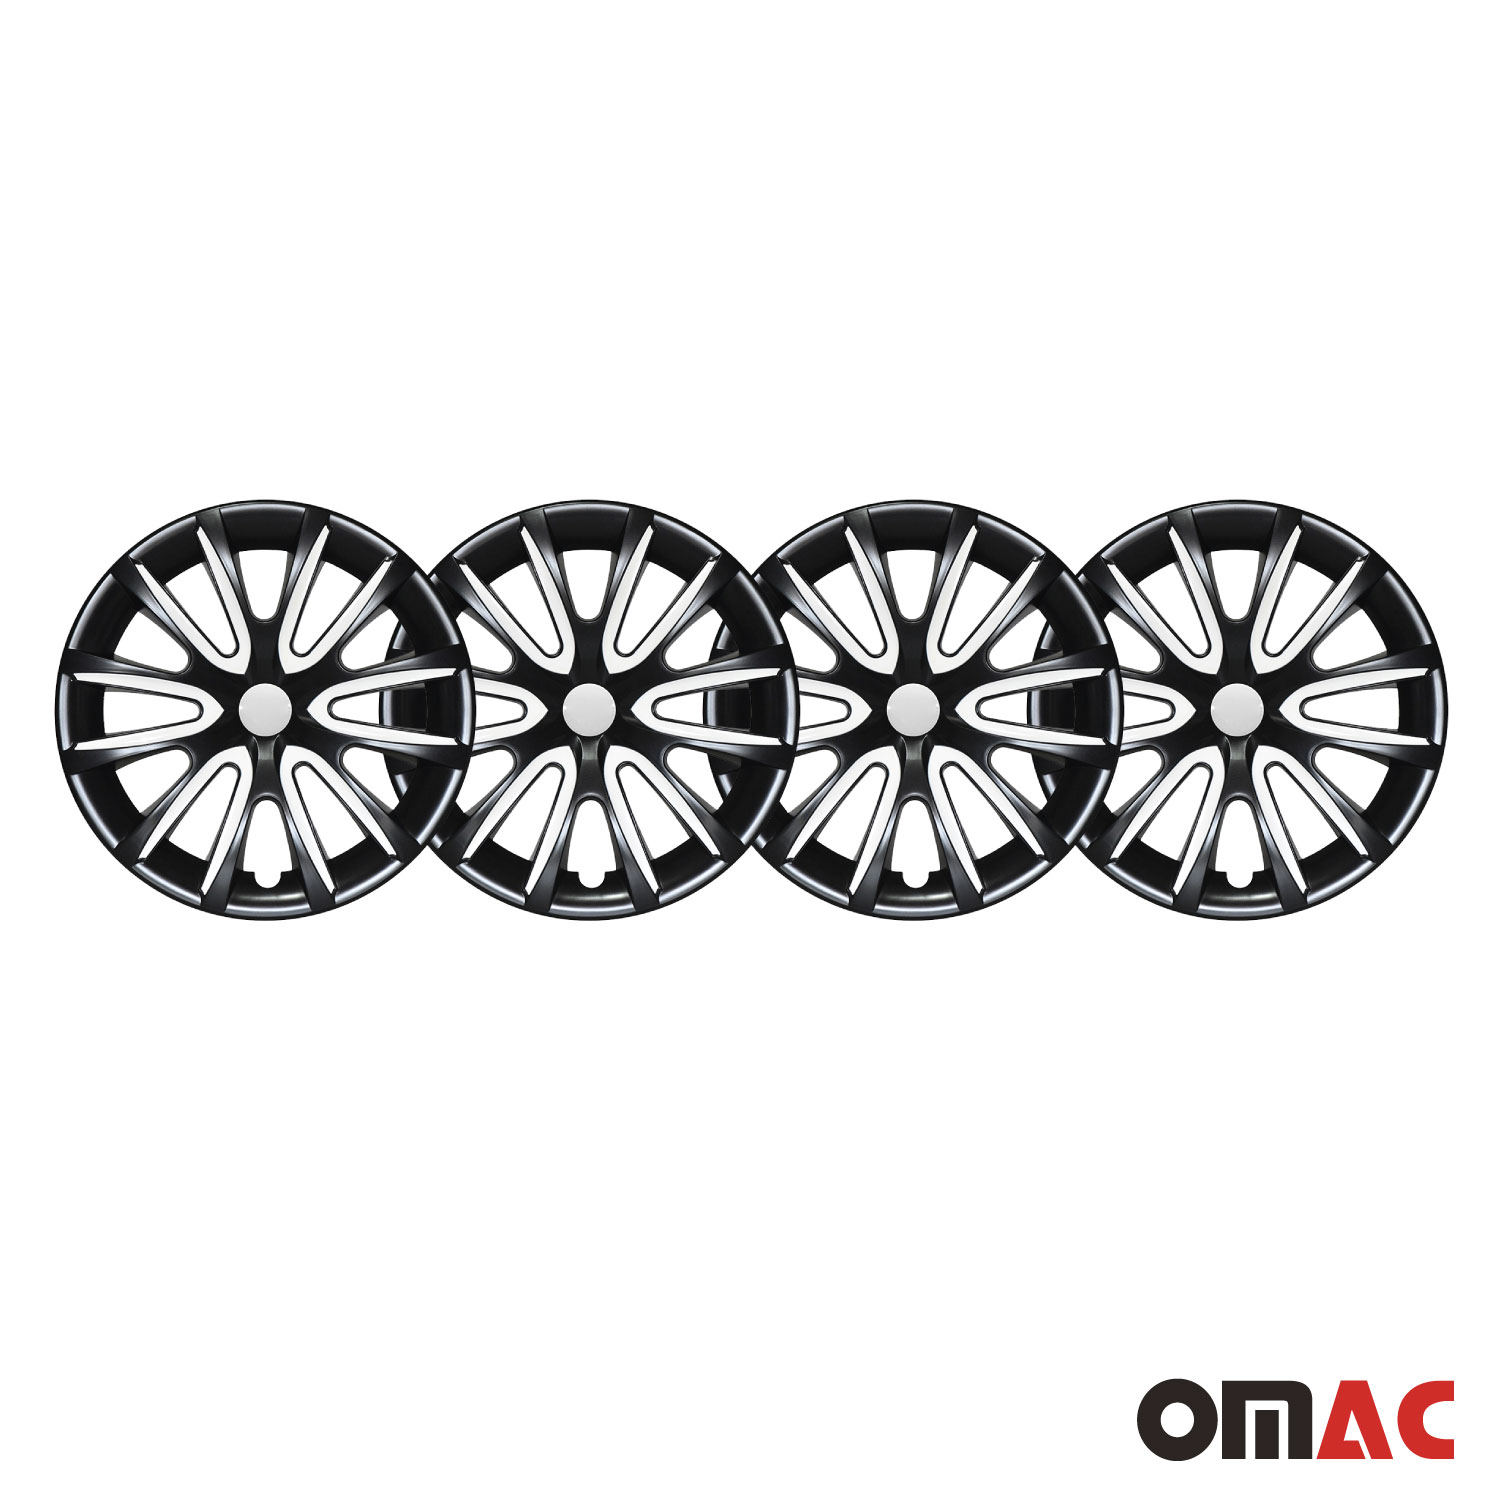 16 Inch Hub Cap Wheel Rim Cover Glossy Black Amp White For